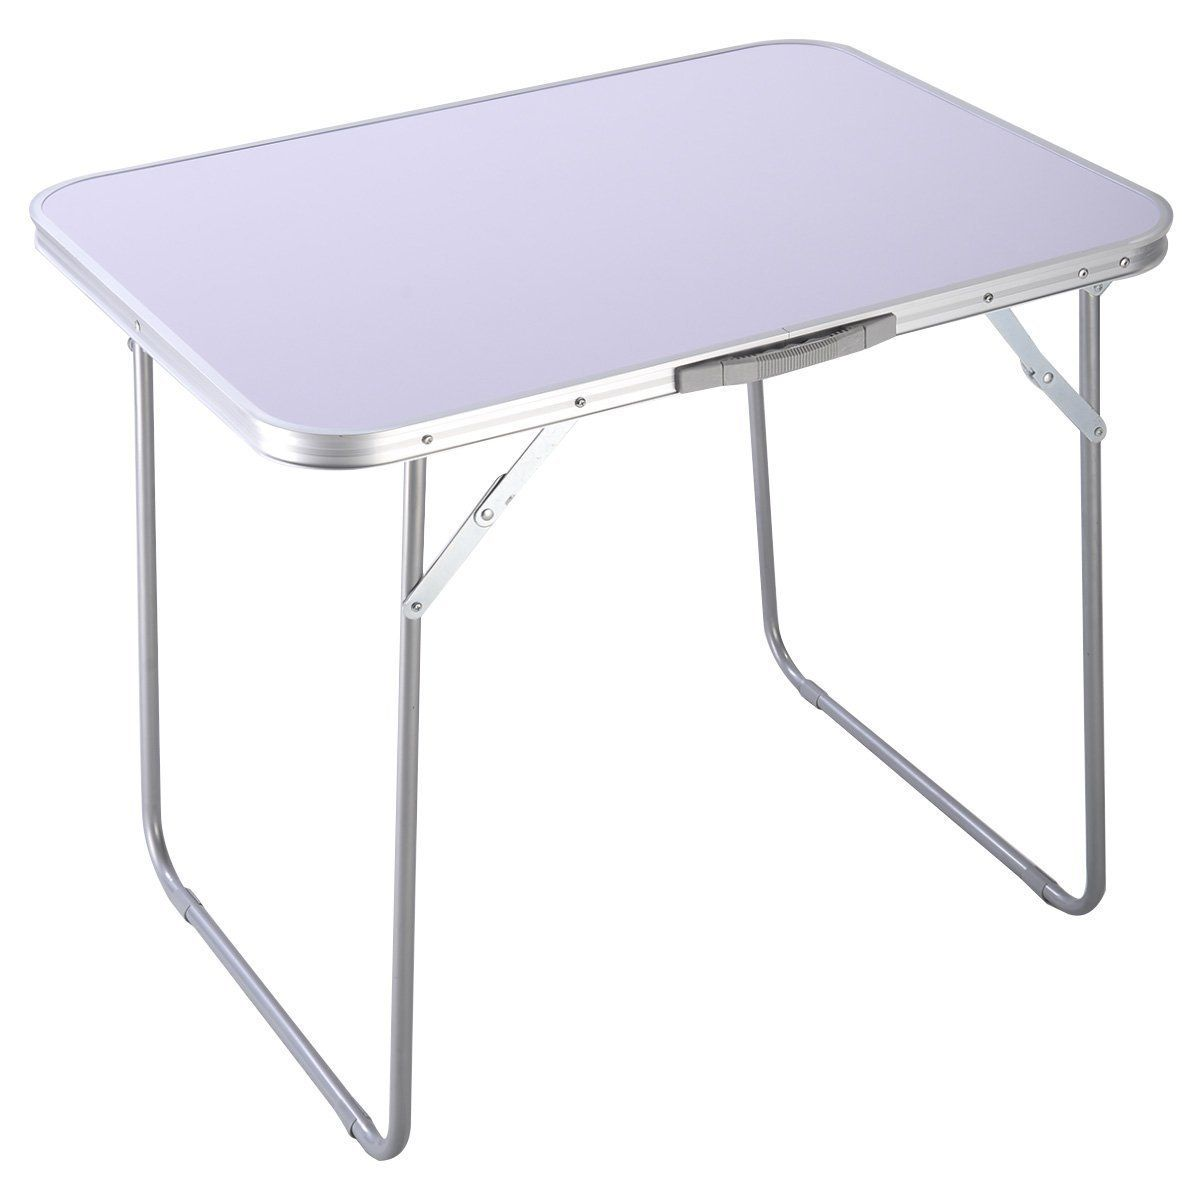 Giantex Portable Folding Table In Outdoor Picnic Party Dining Camping Desk More Info Could Be Found At The Im Camping Table Aluminum Table Camping Furniture